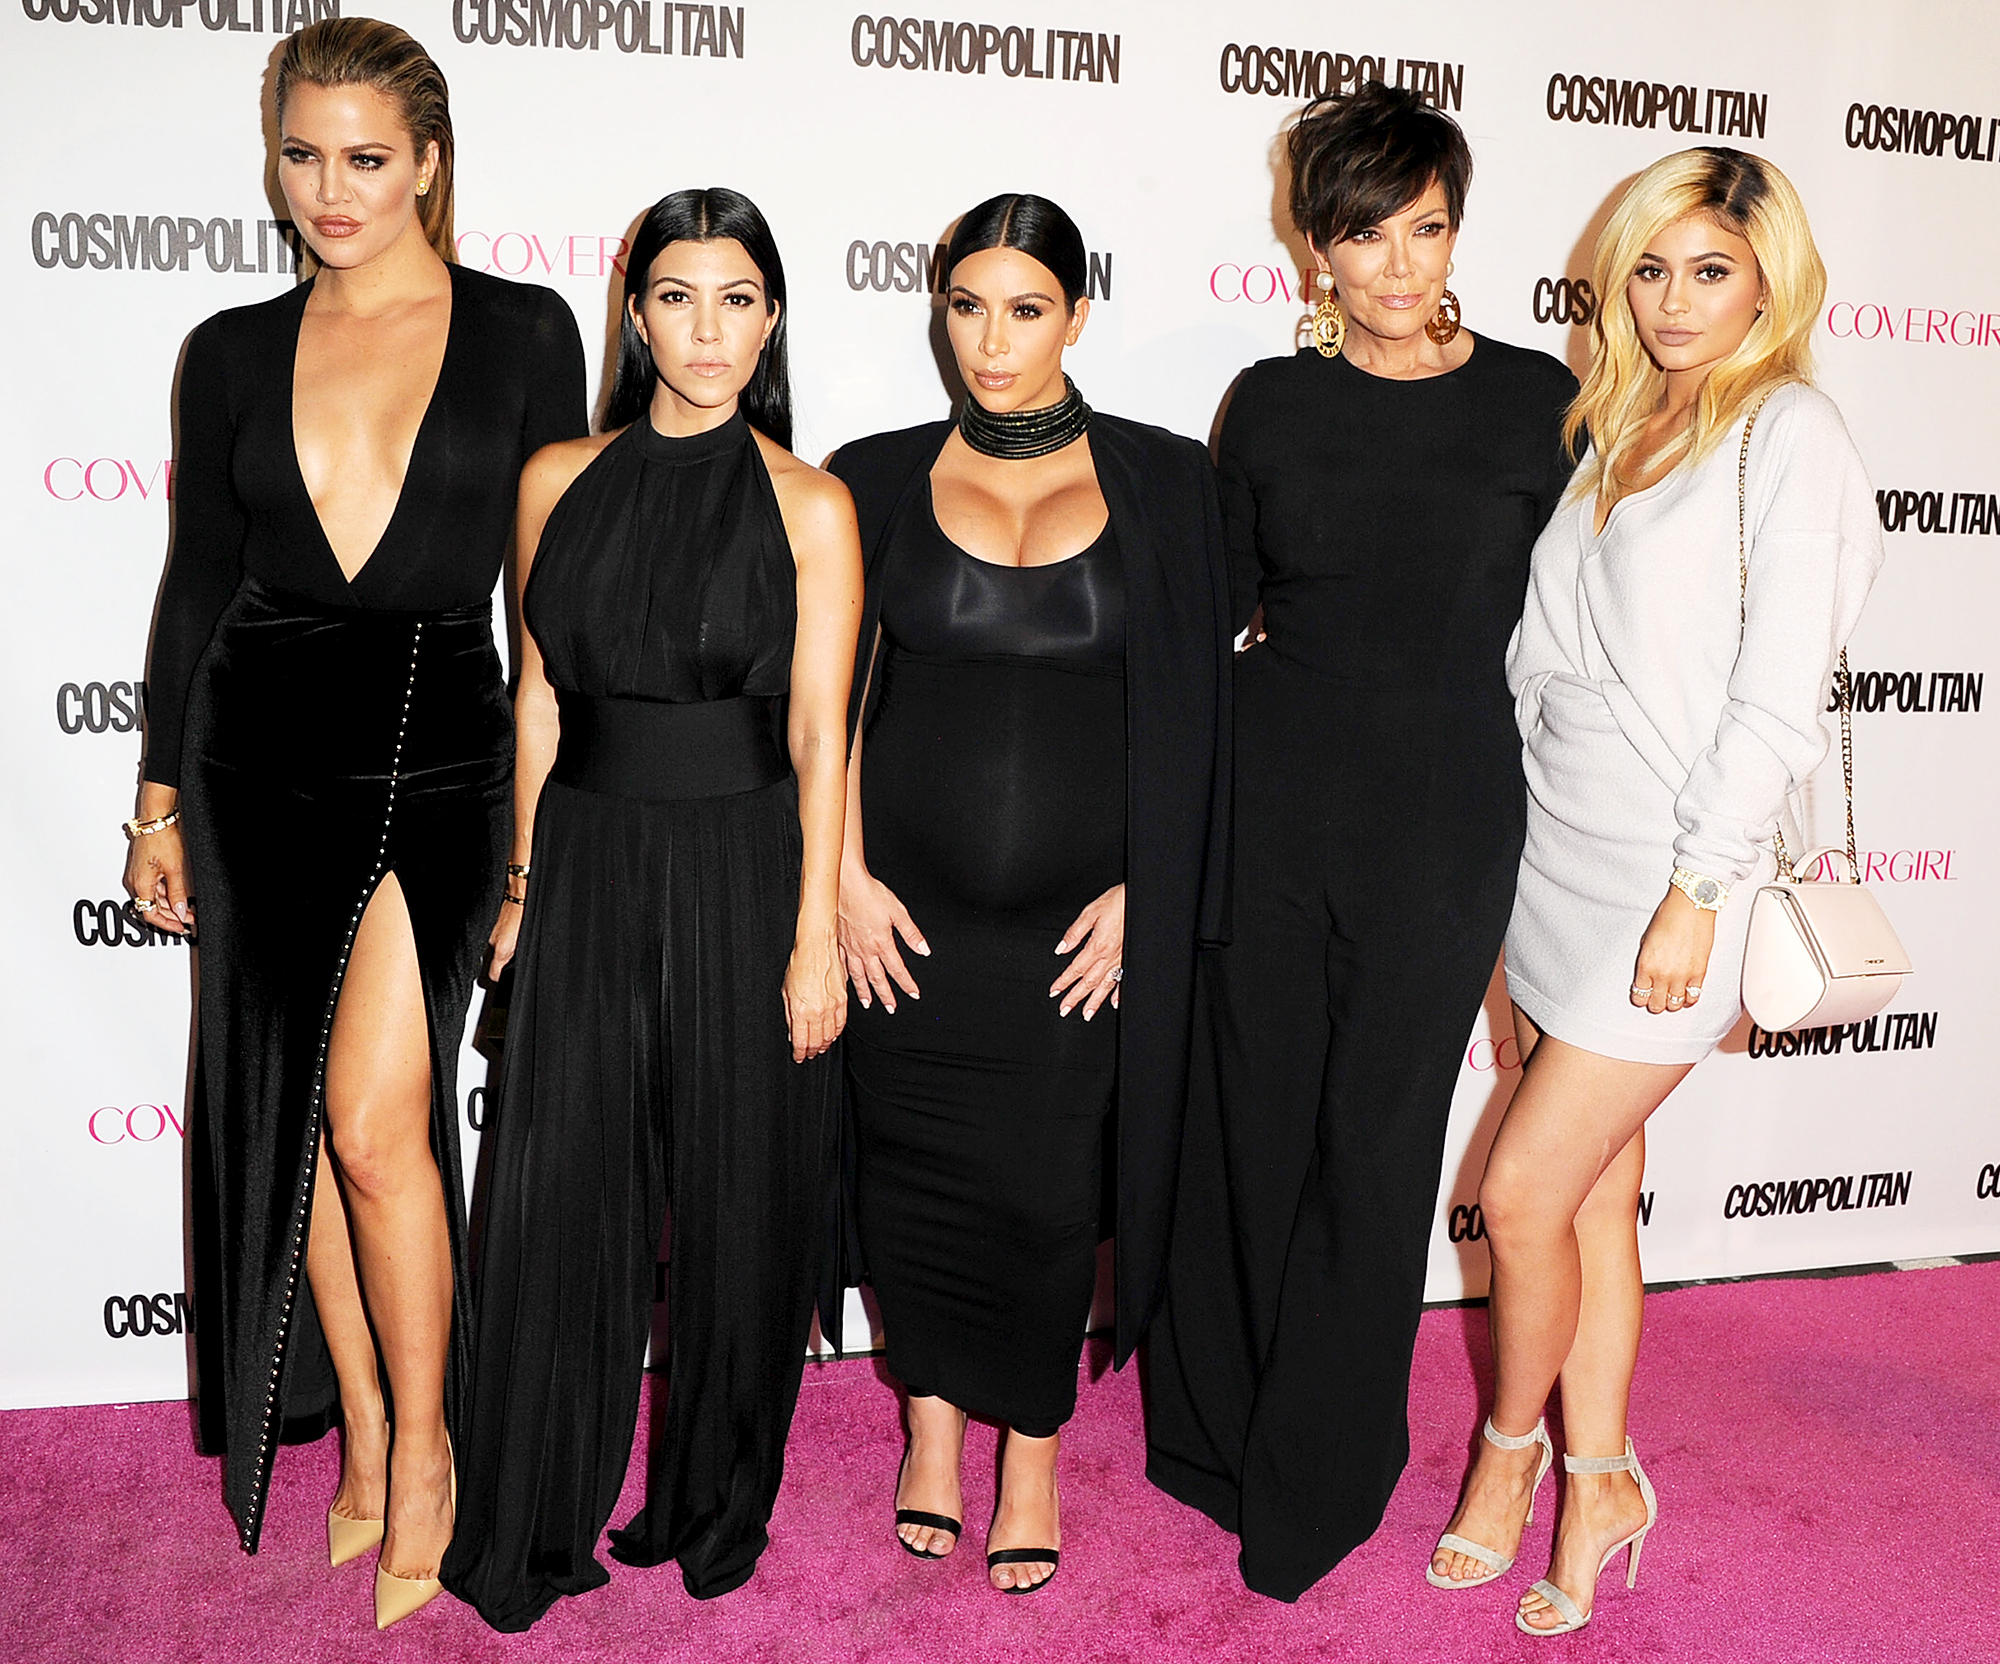 Kardashians React to Arrival of Khloe Kardashian's Baby Girl